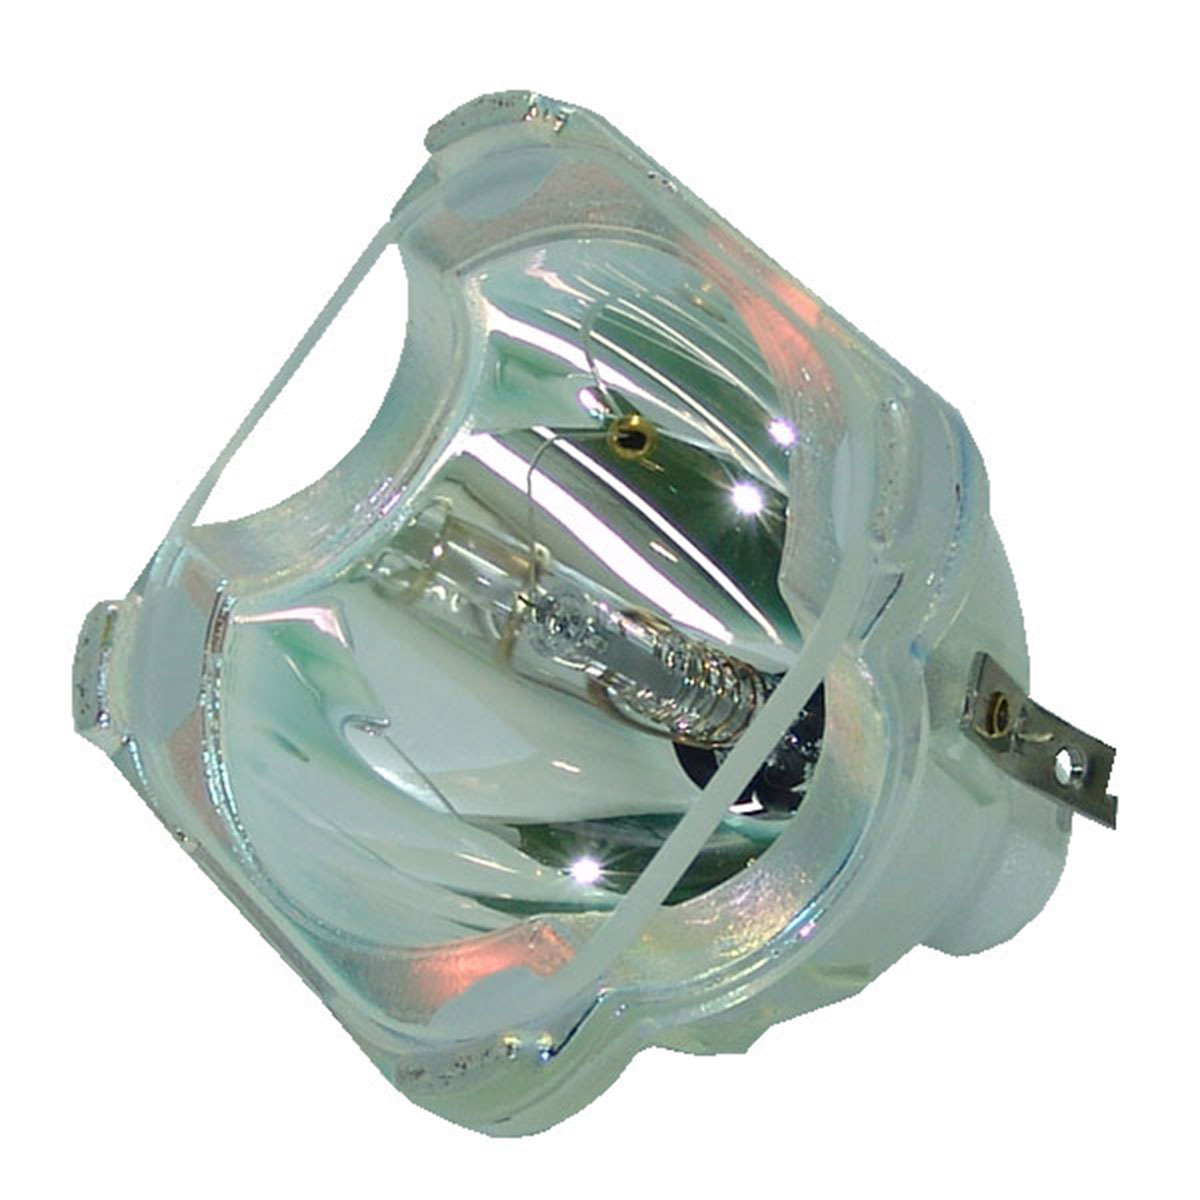 Mitsubishi Projection Tv Bulb Philips Bare Lamp For Mitsubishi Wd 73840 Wd73840 Projection Tv Bulb Dlp